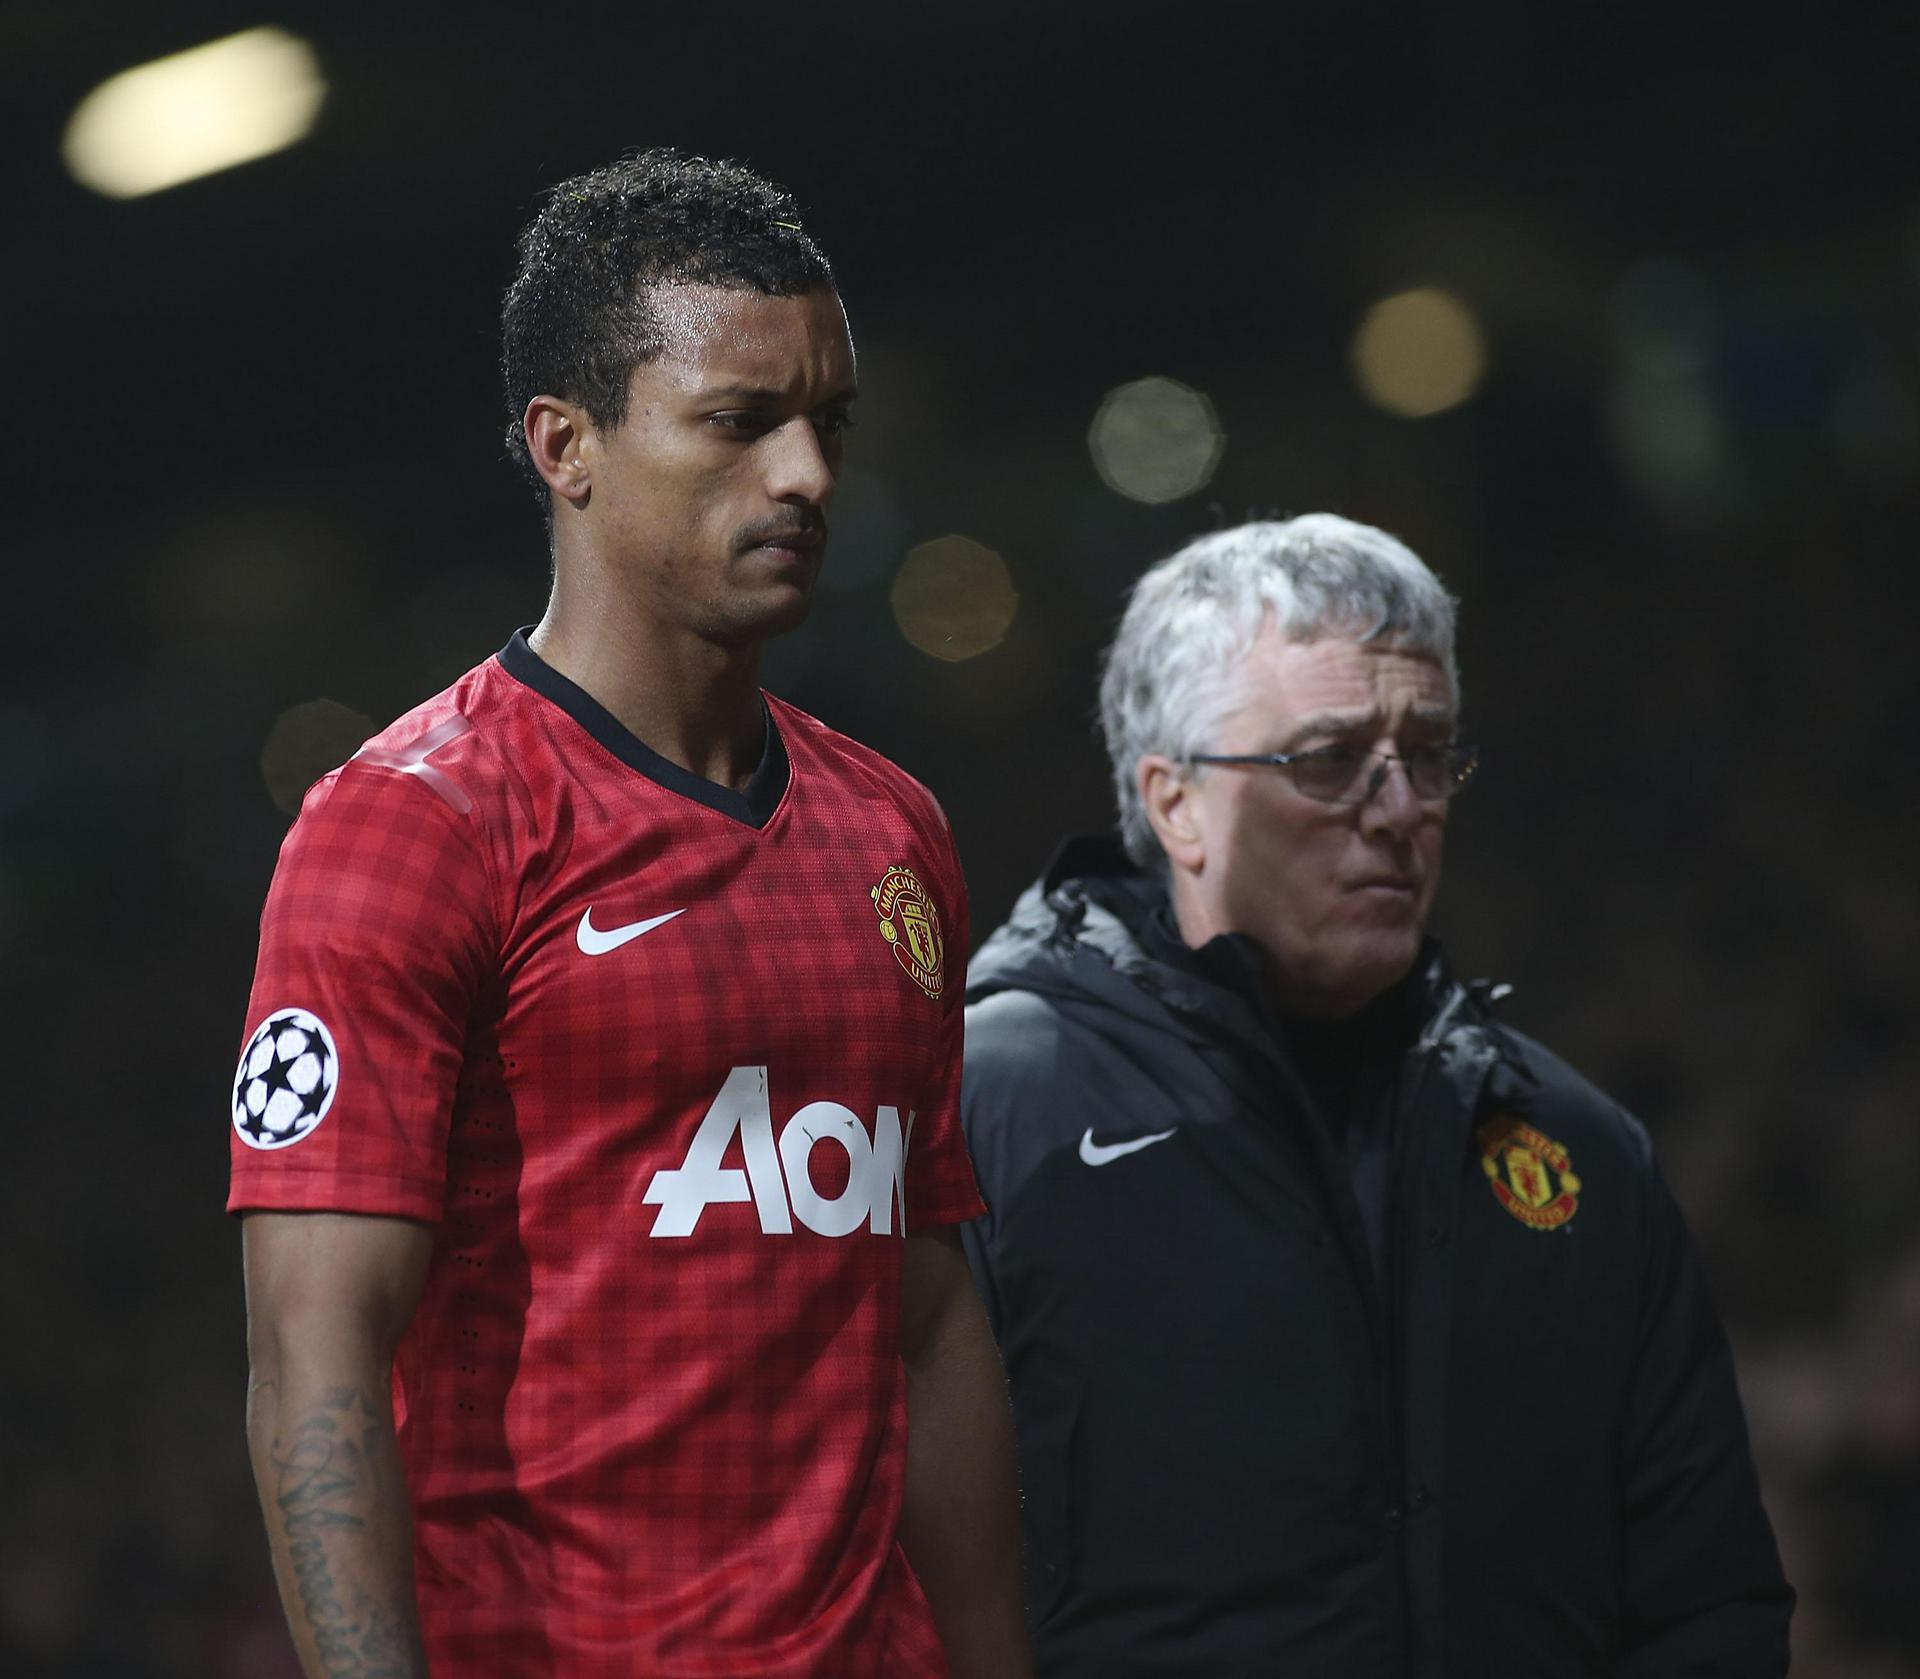 Nani walks off the Old Trafford pitch after being sent off against Real Madrid.